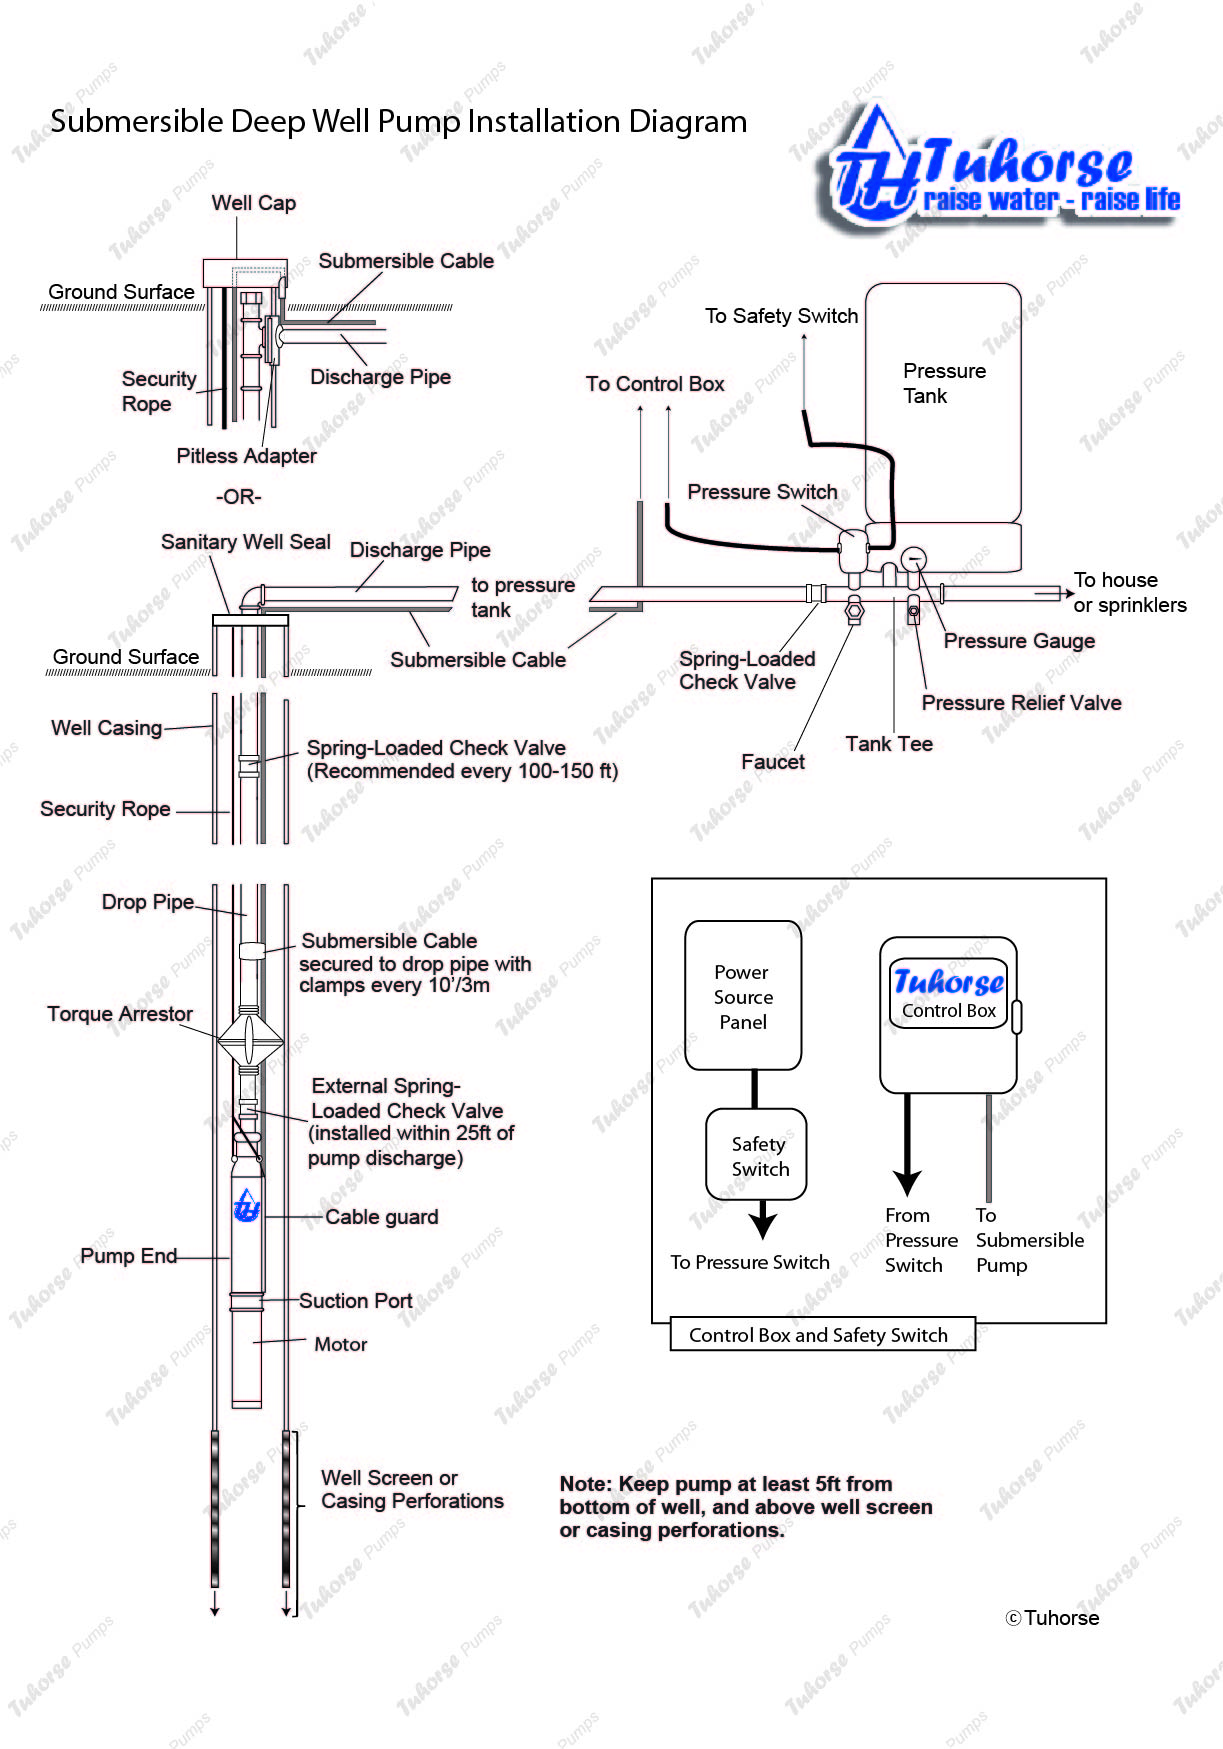 Pool Motor Wiring Diagram Switch Change Your Idea With In Addition Reversing Drum Jet Pump Data Rh 19 1 8 Reisen Fuer Meister De Ac Schematic